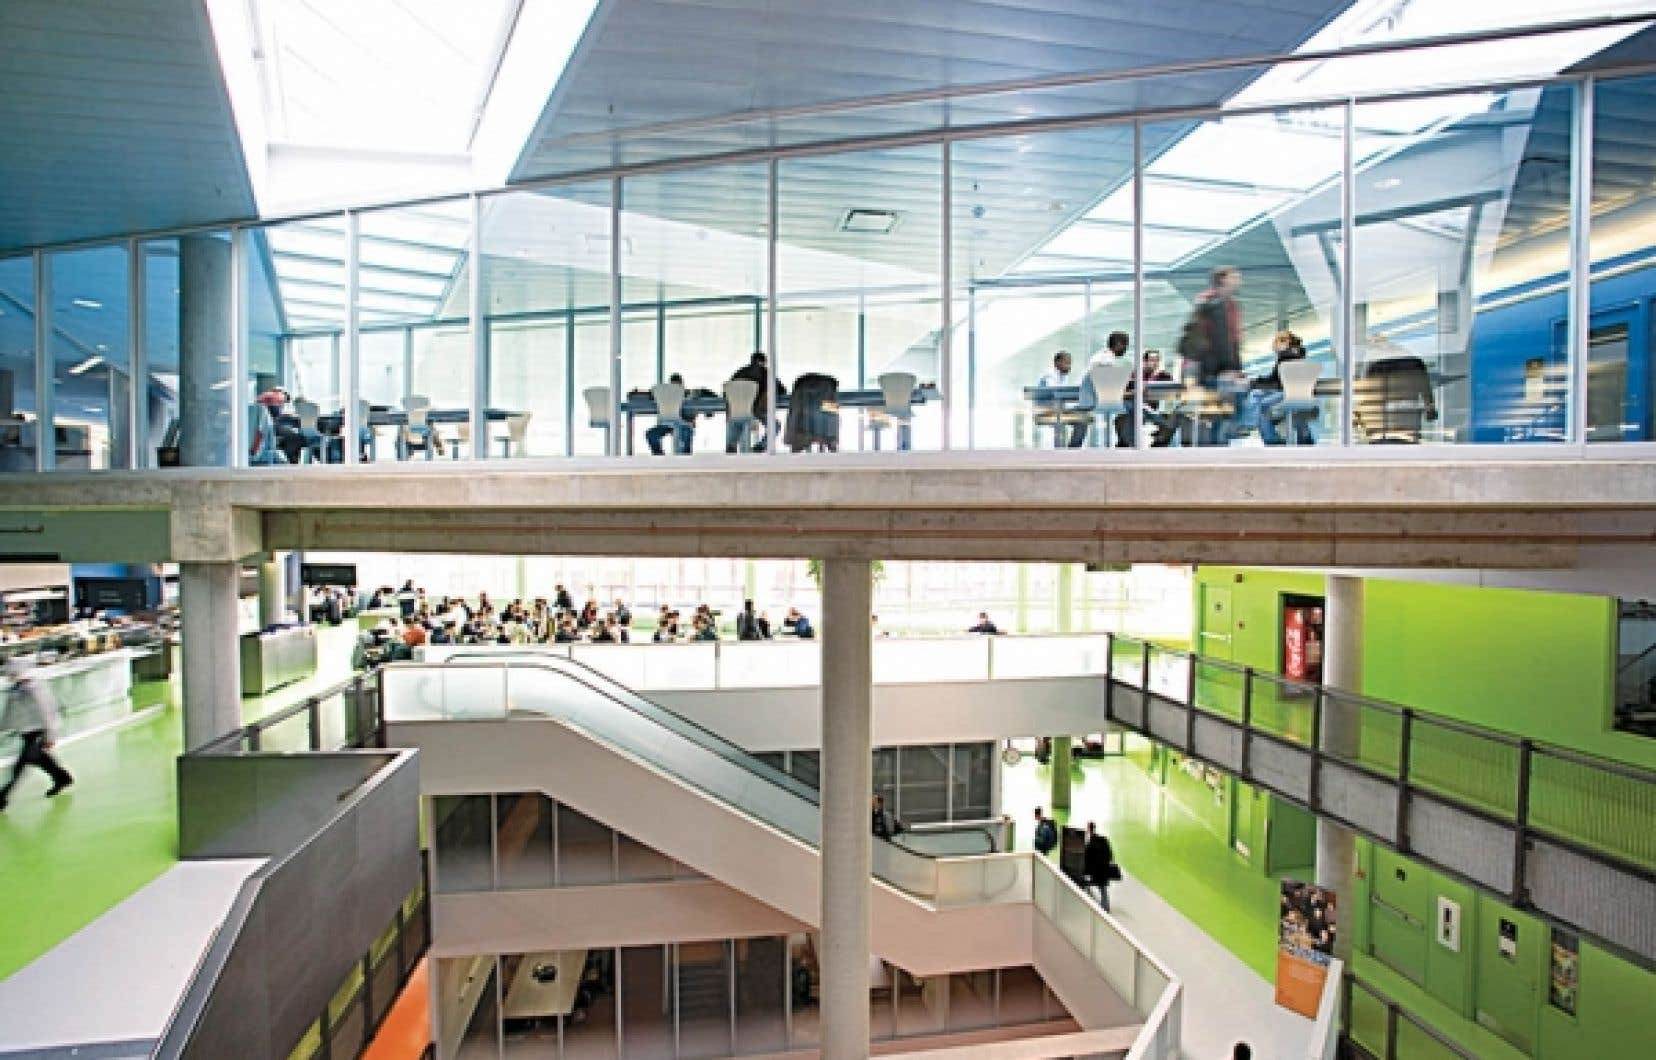 Les pavillons Lassonde de l'École polytechnique sont les premiers bâtiments universitaires canadiens à avoir obtenu la certification internationale LEED or du U. S. Green Building Council.<br />